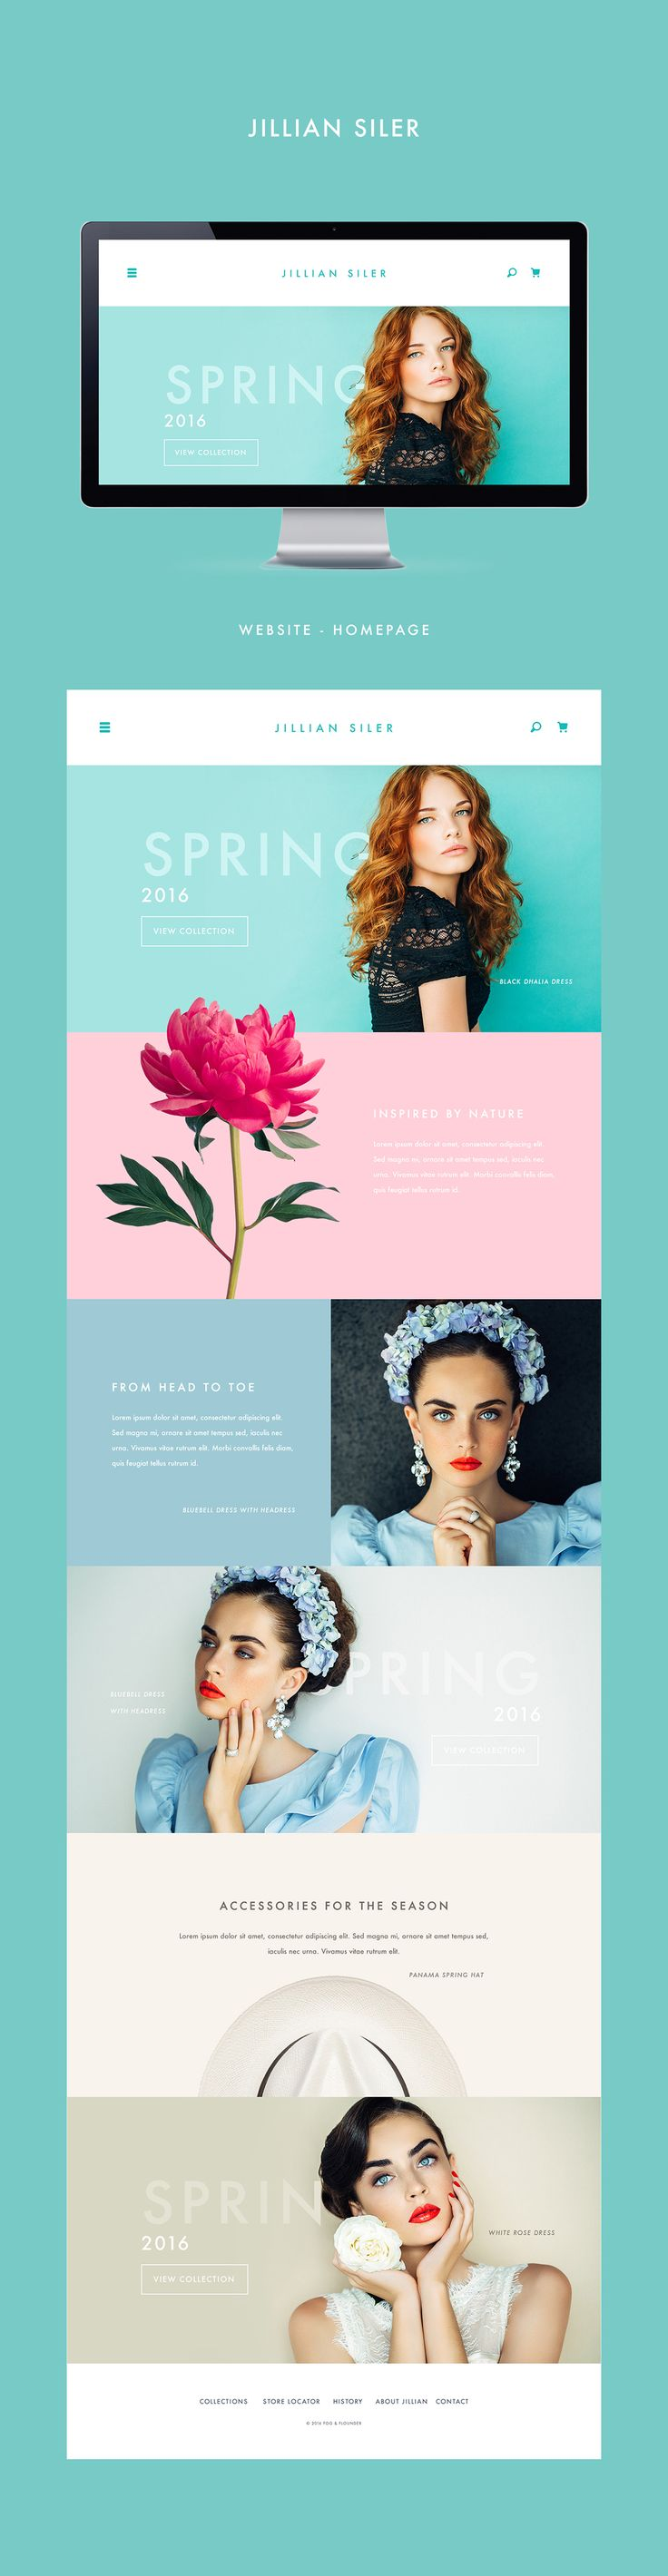 Jillian Siler - Fashion Site on Behance